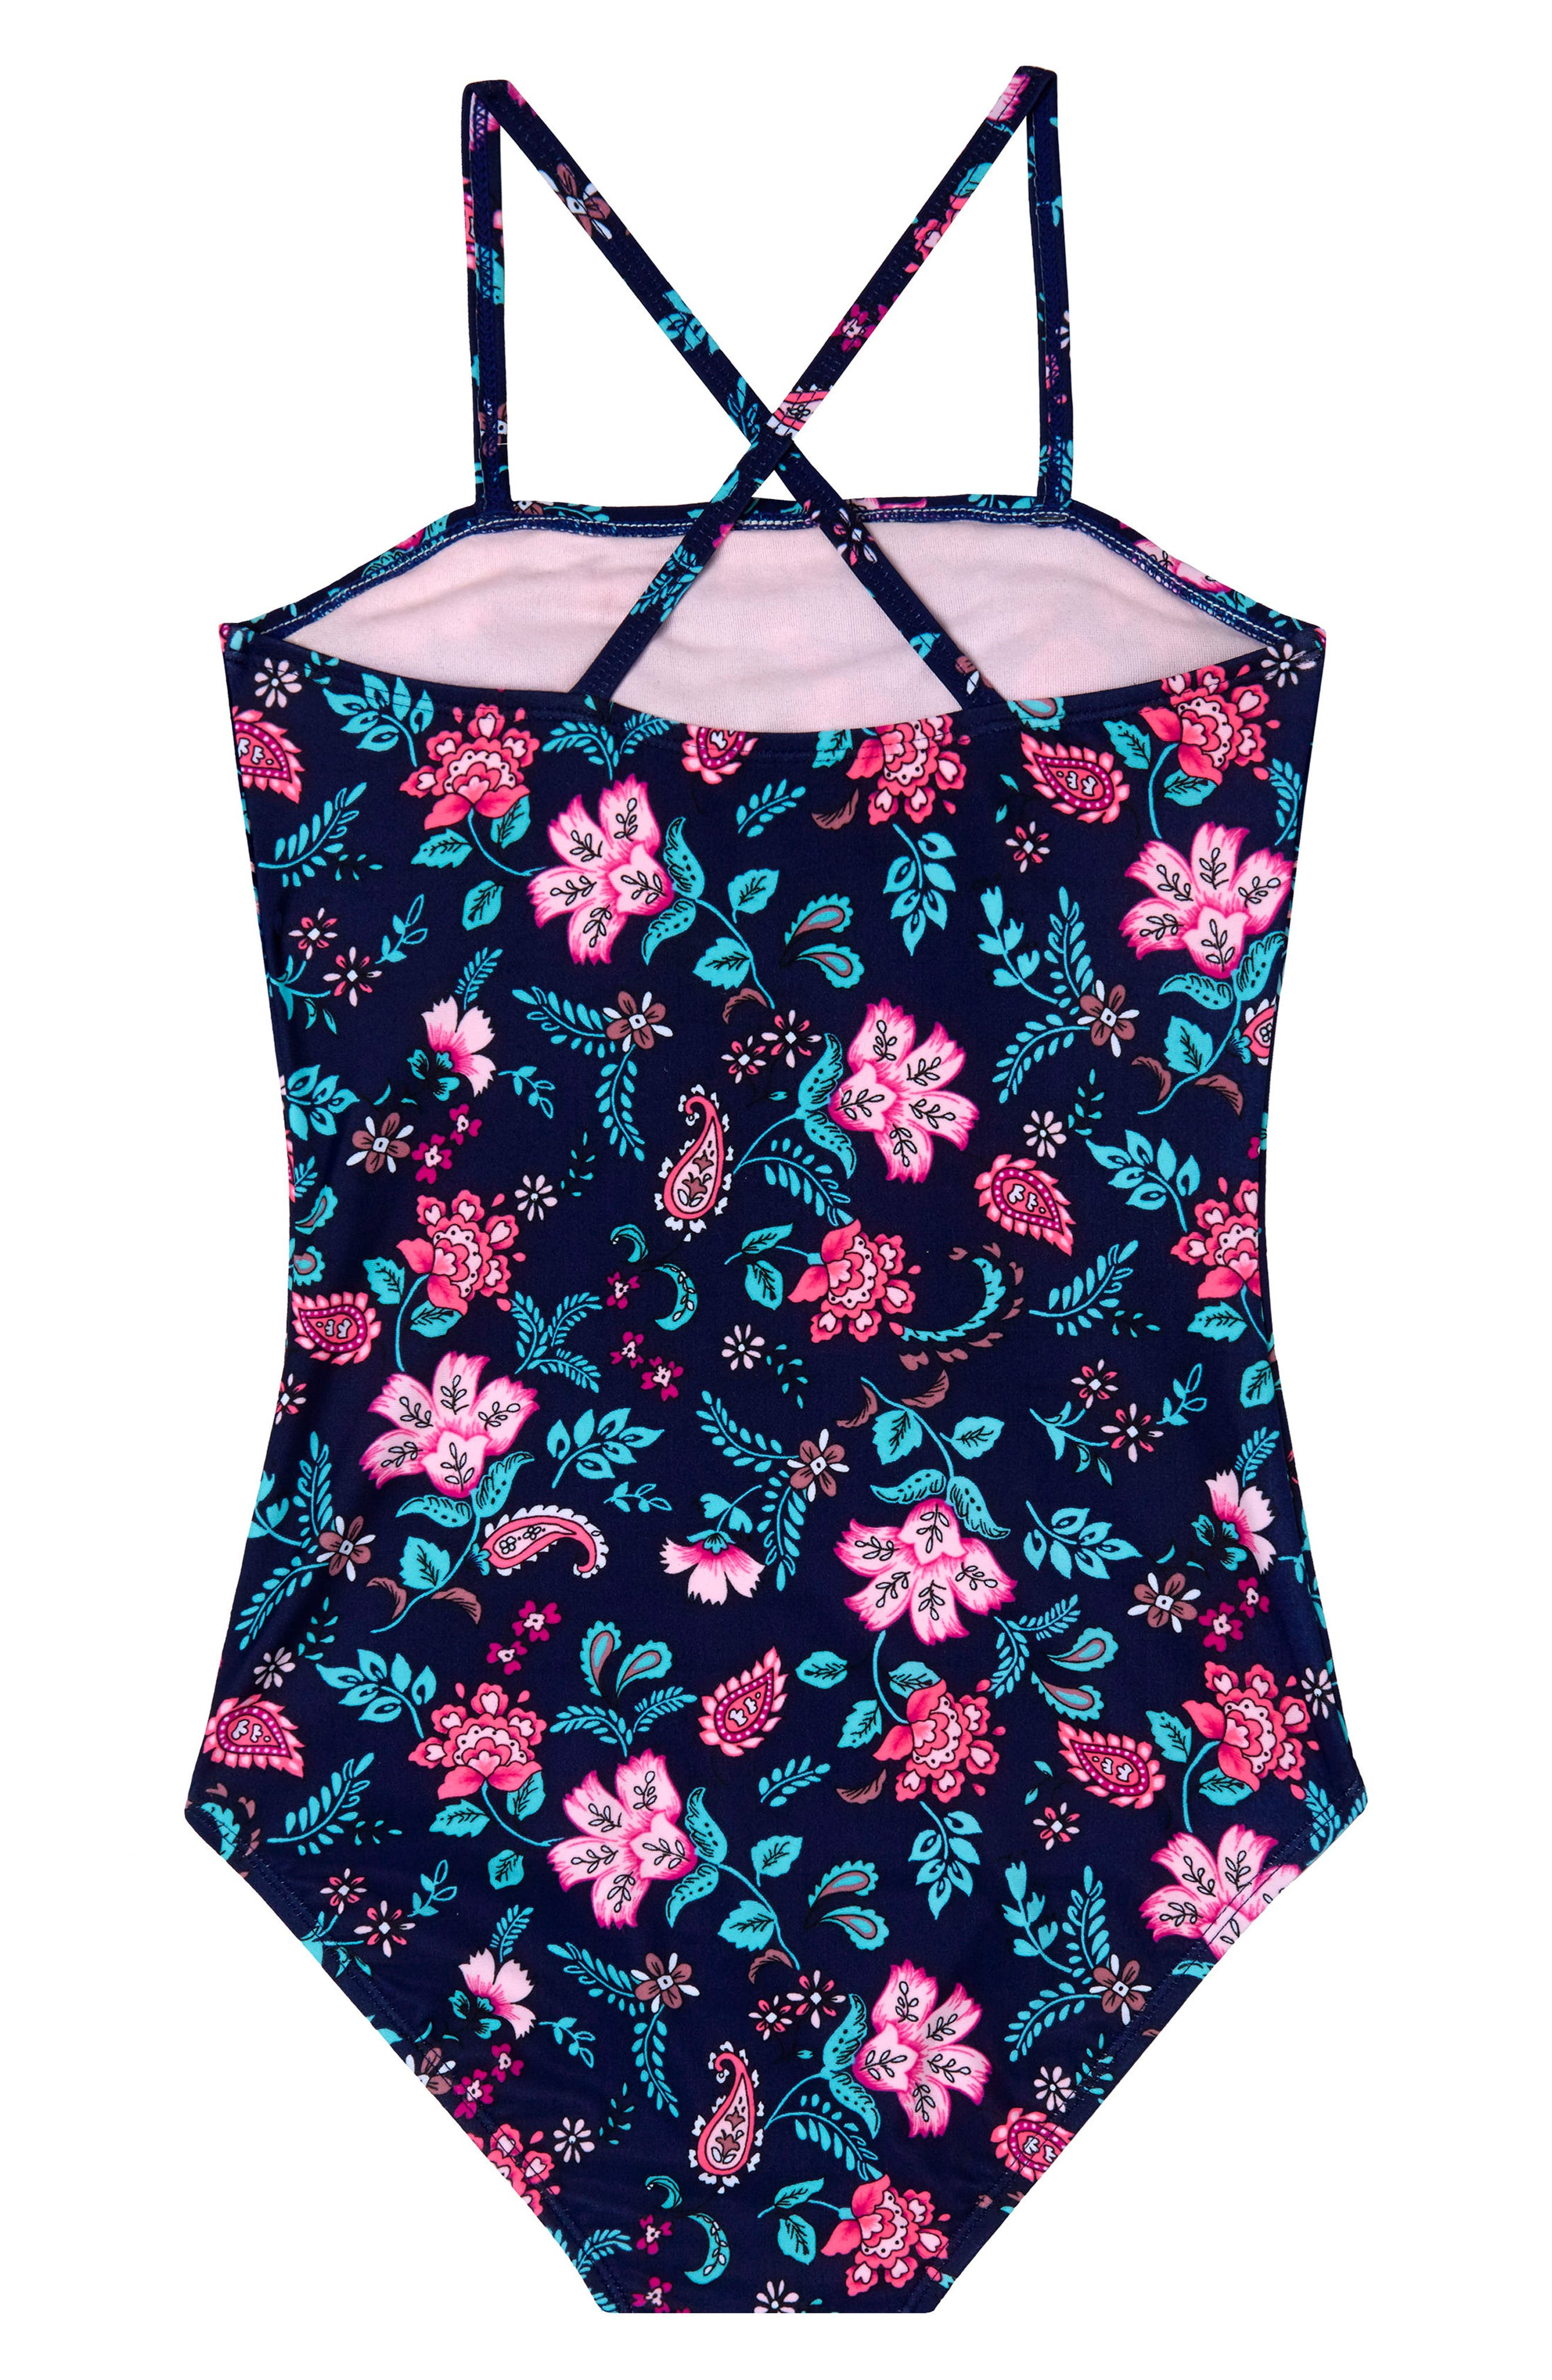 Floral Field One-Piece Swimsuit,                             Alternate thumbnail 2, color,                             406